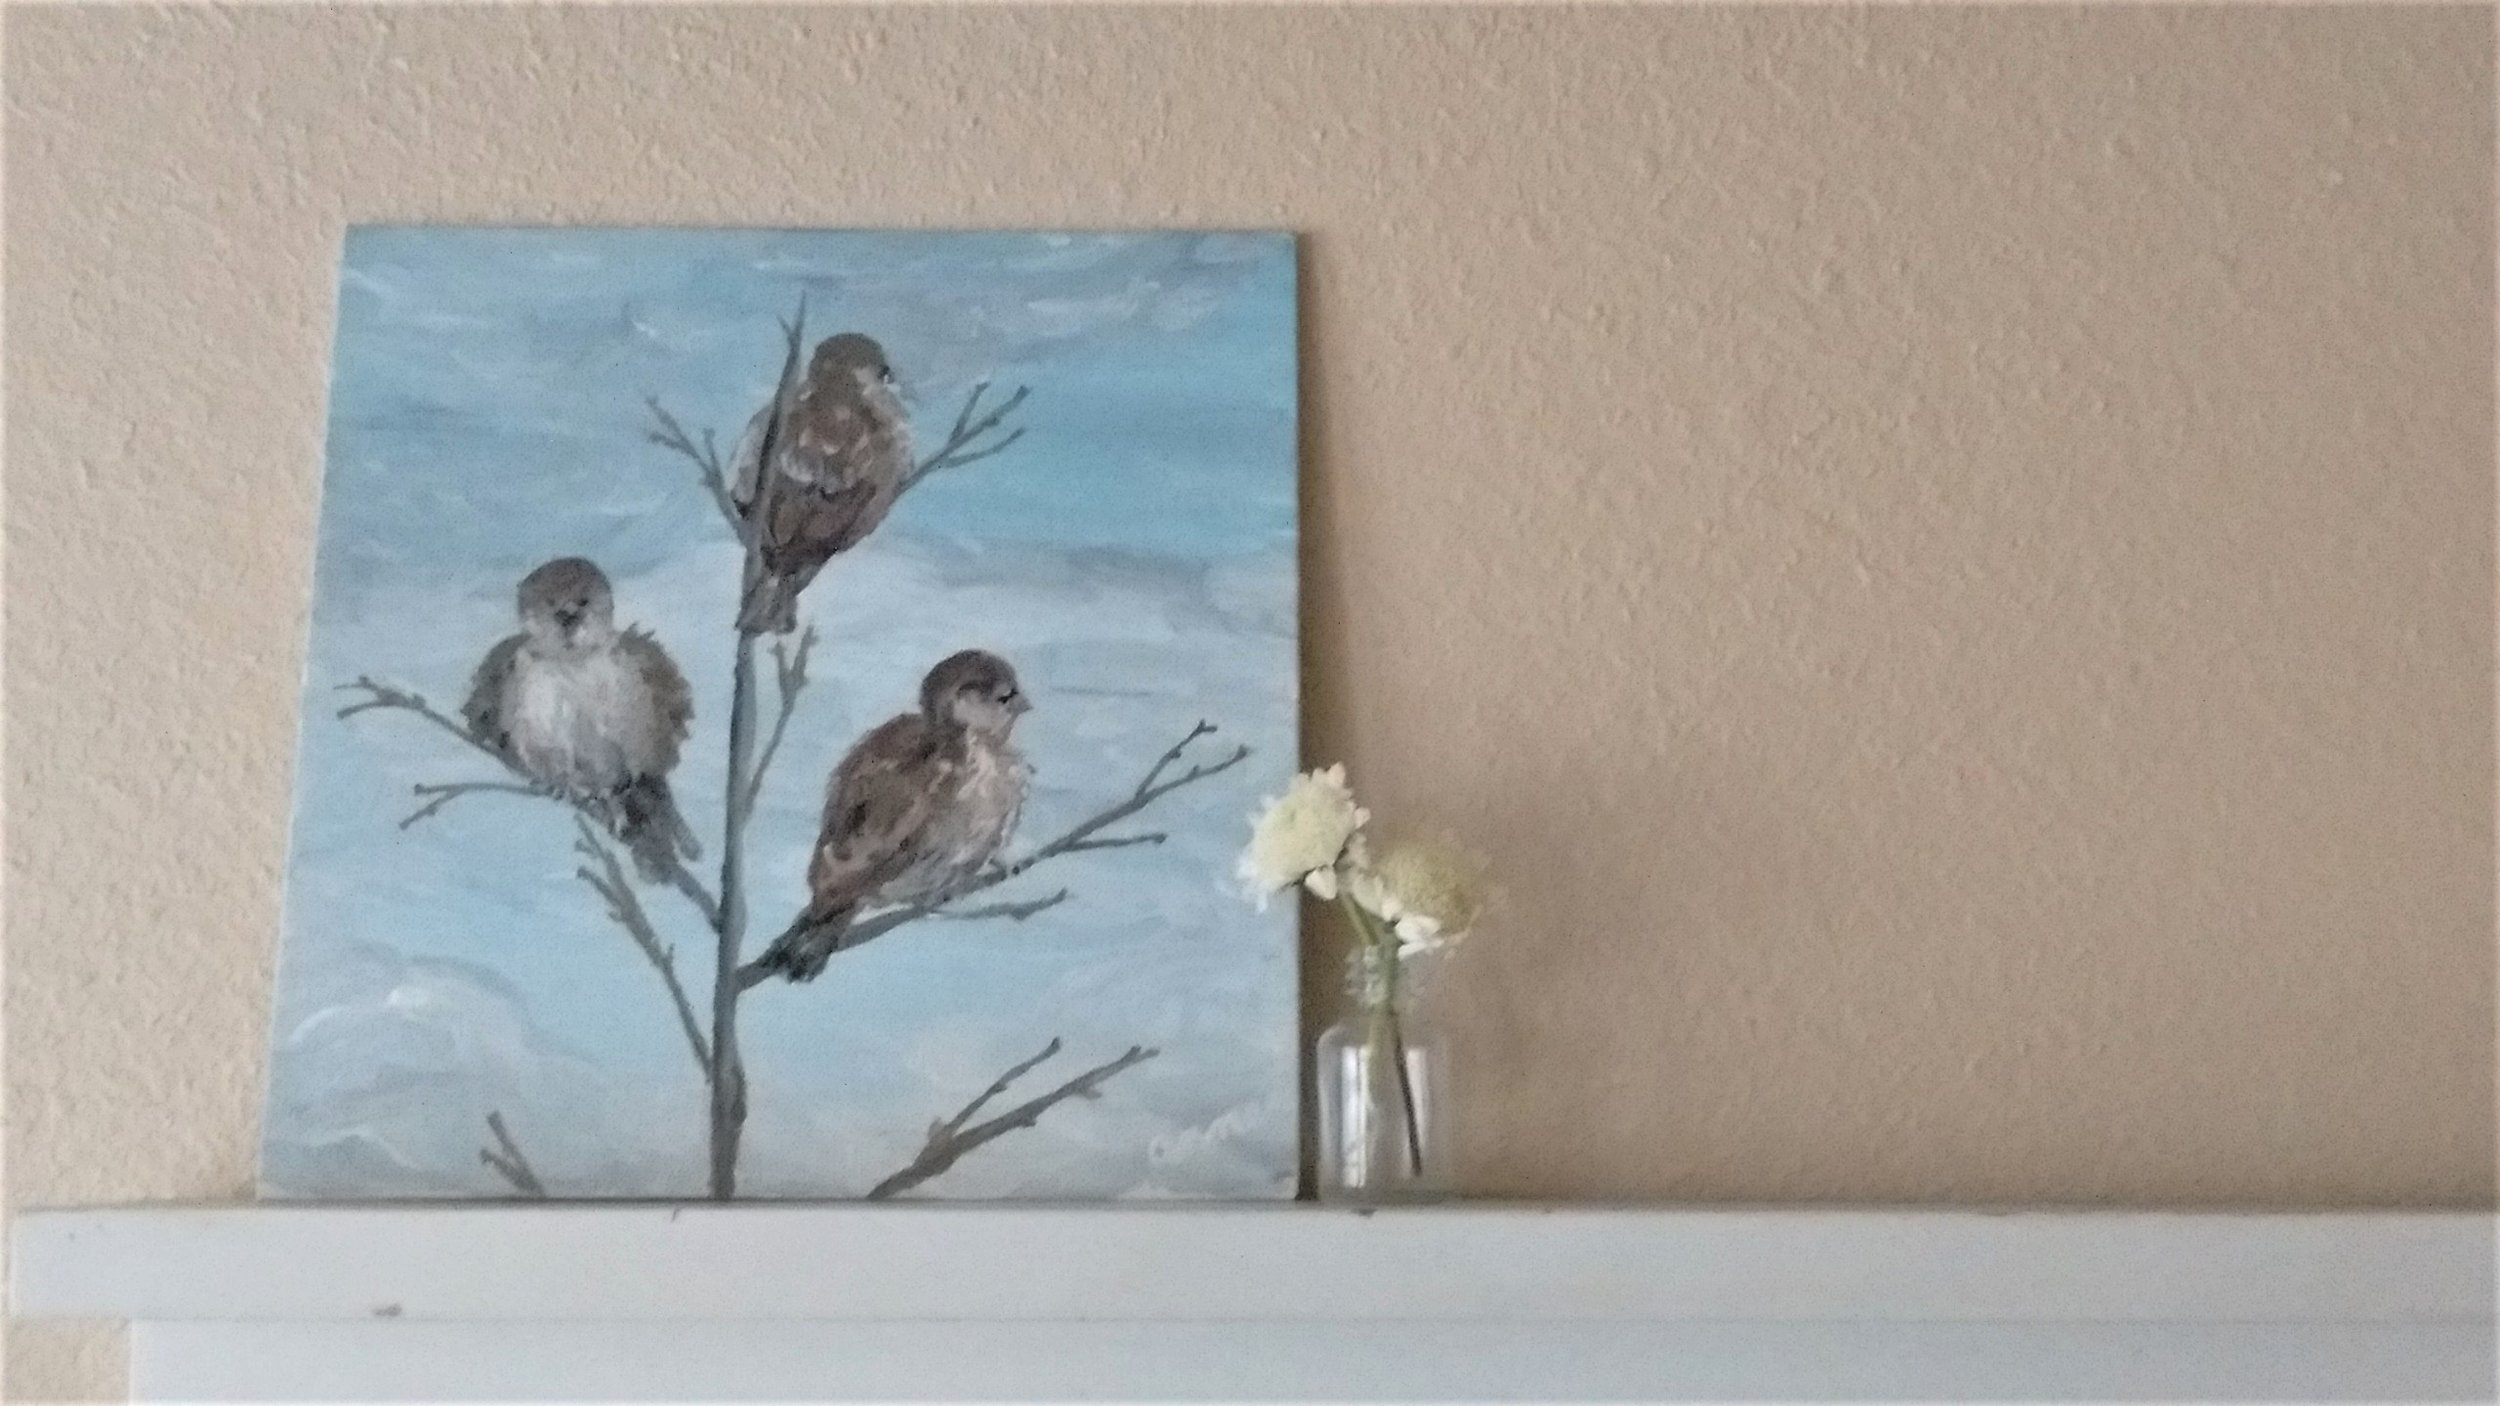 Birds and Berry Studio, Interview with Anne Hockneberry at Shelbyathome.com